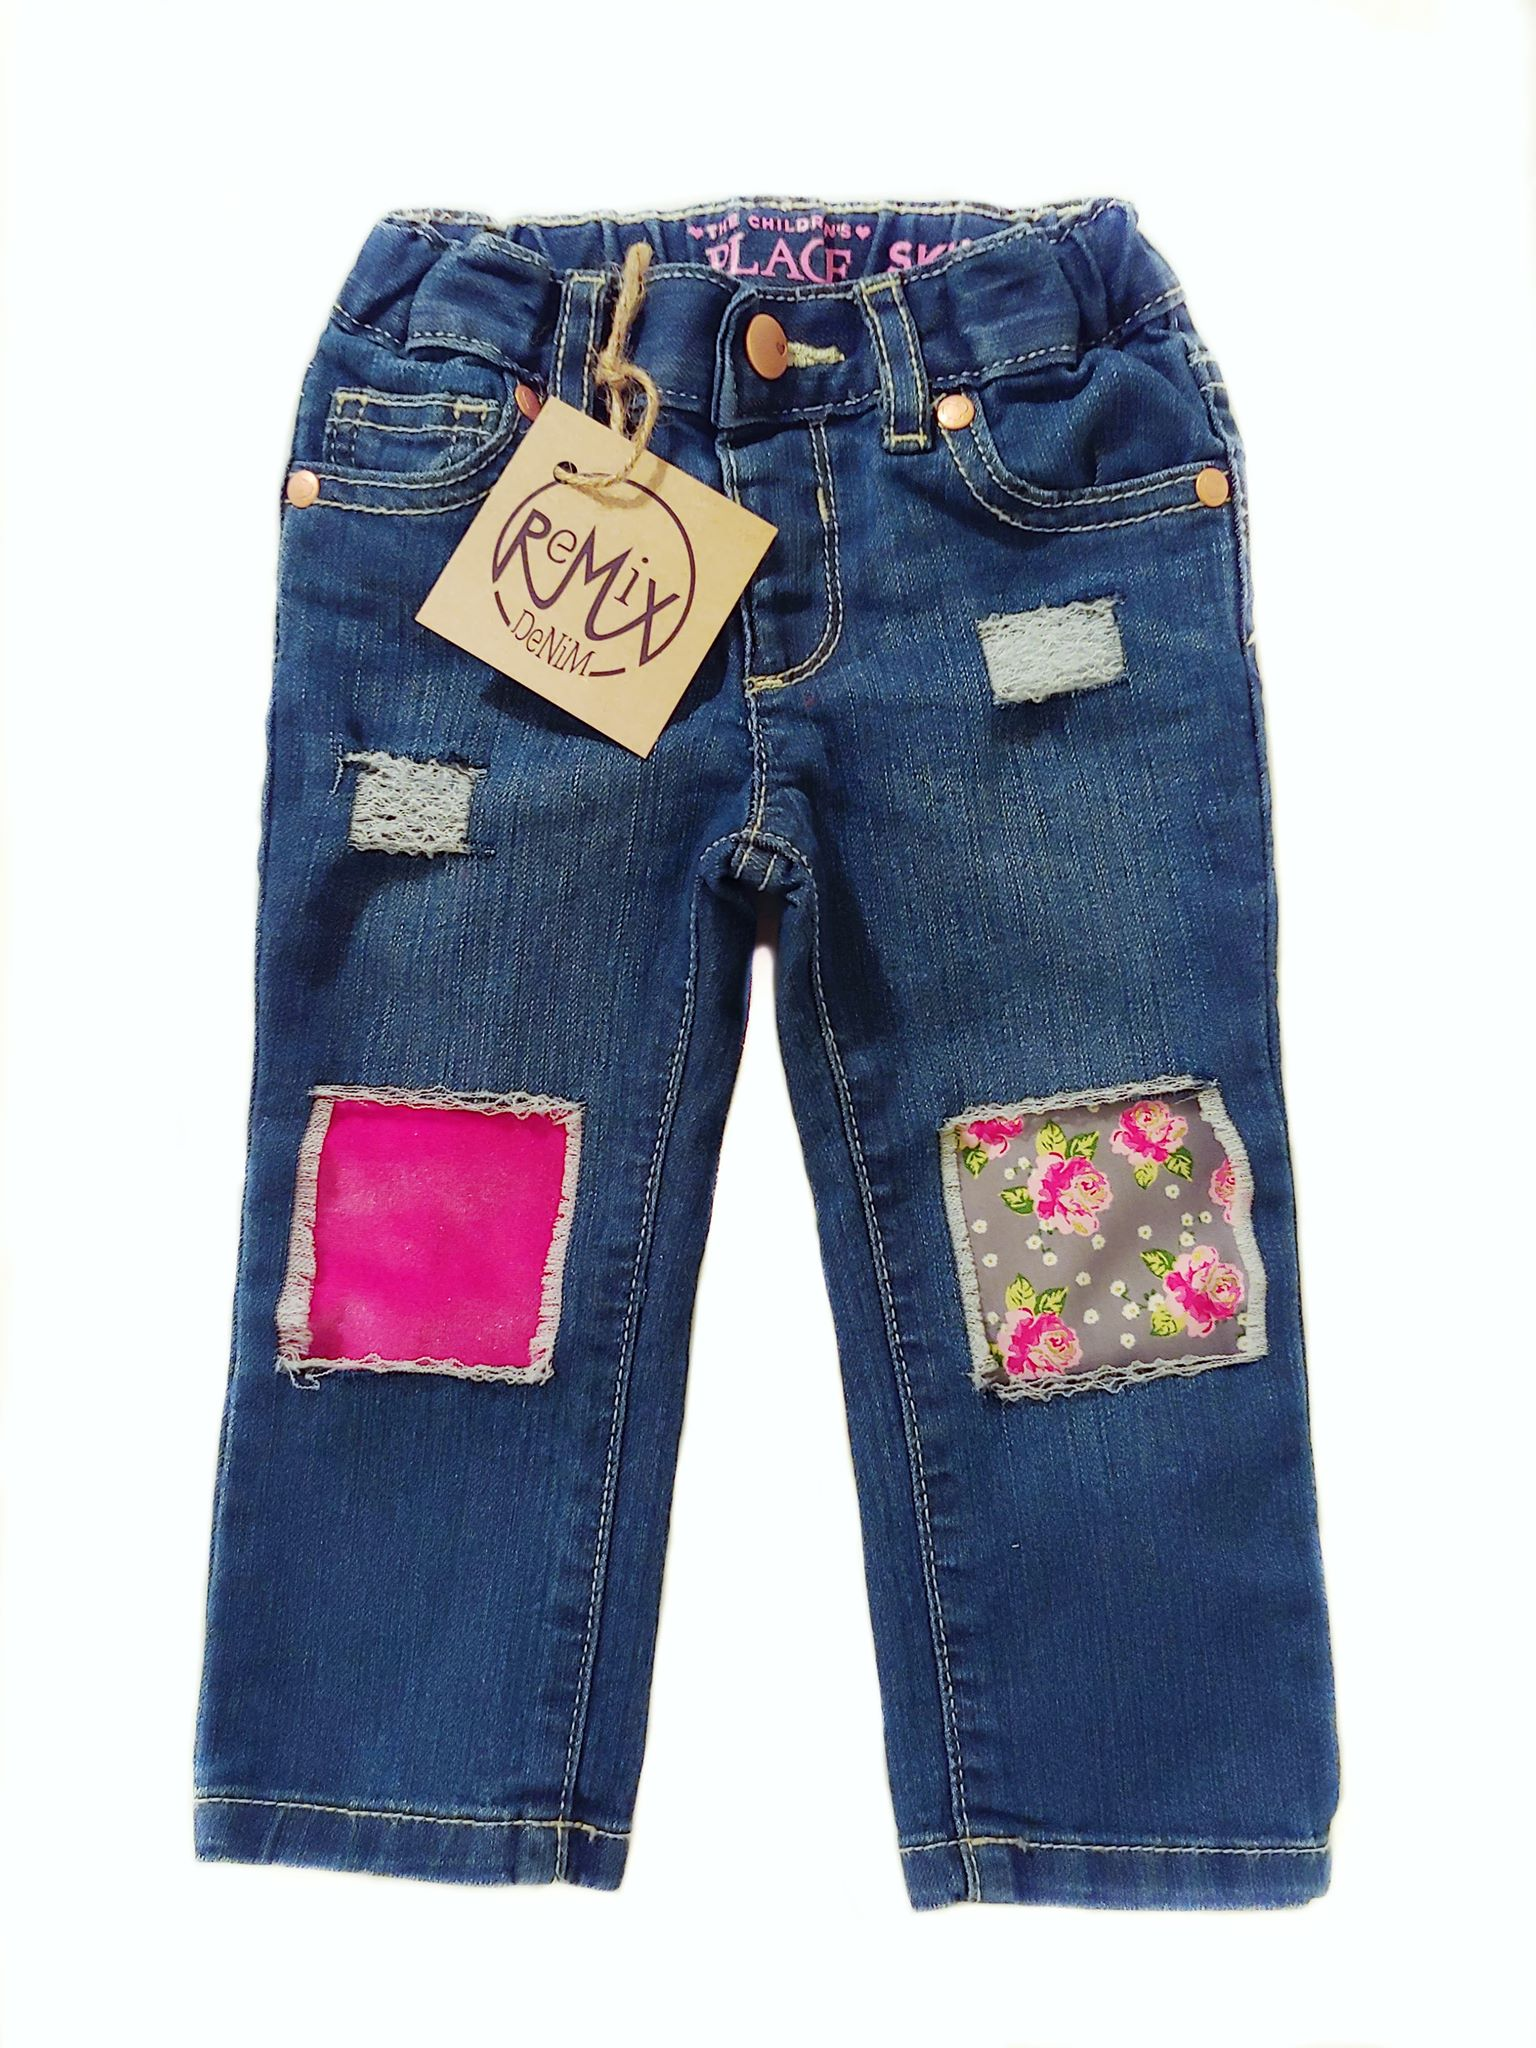 Dainty Pink Roses and Velvet Distressed Jeans